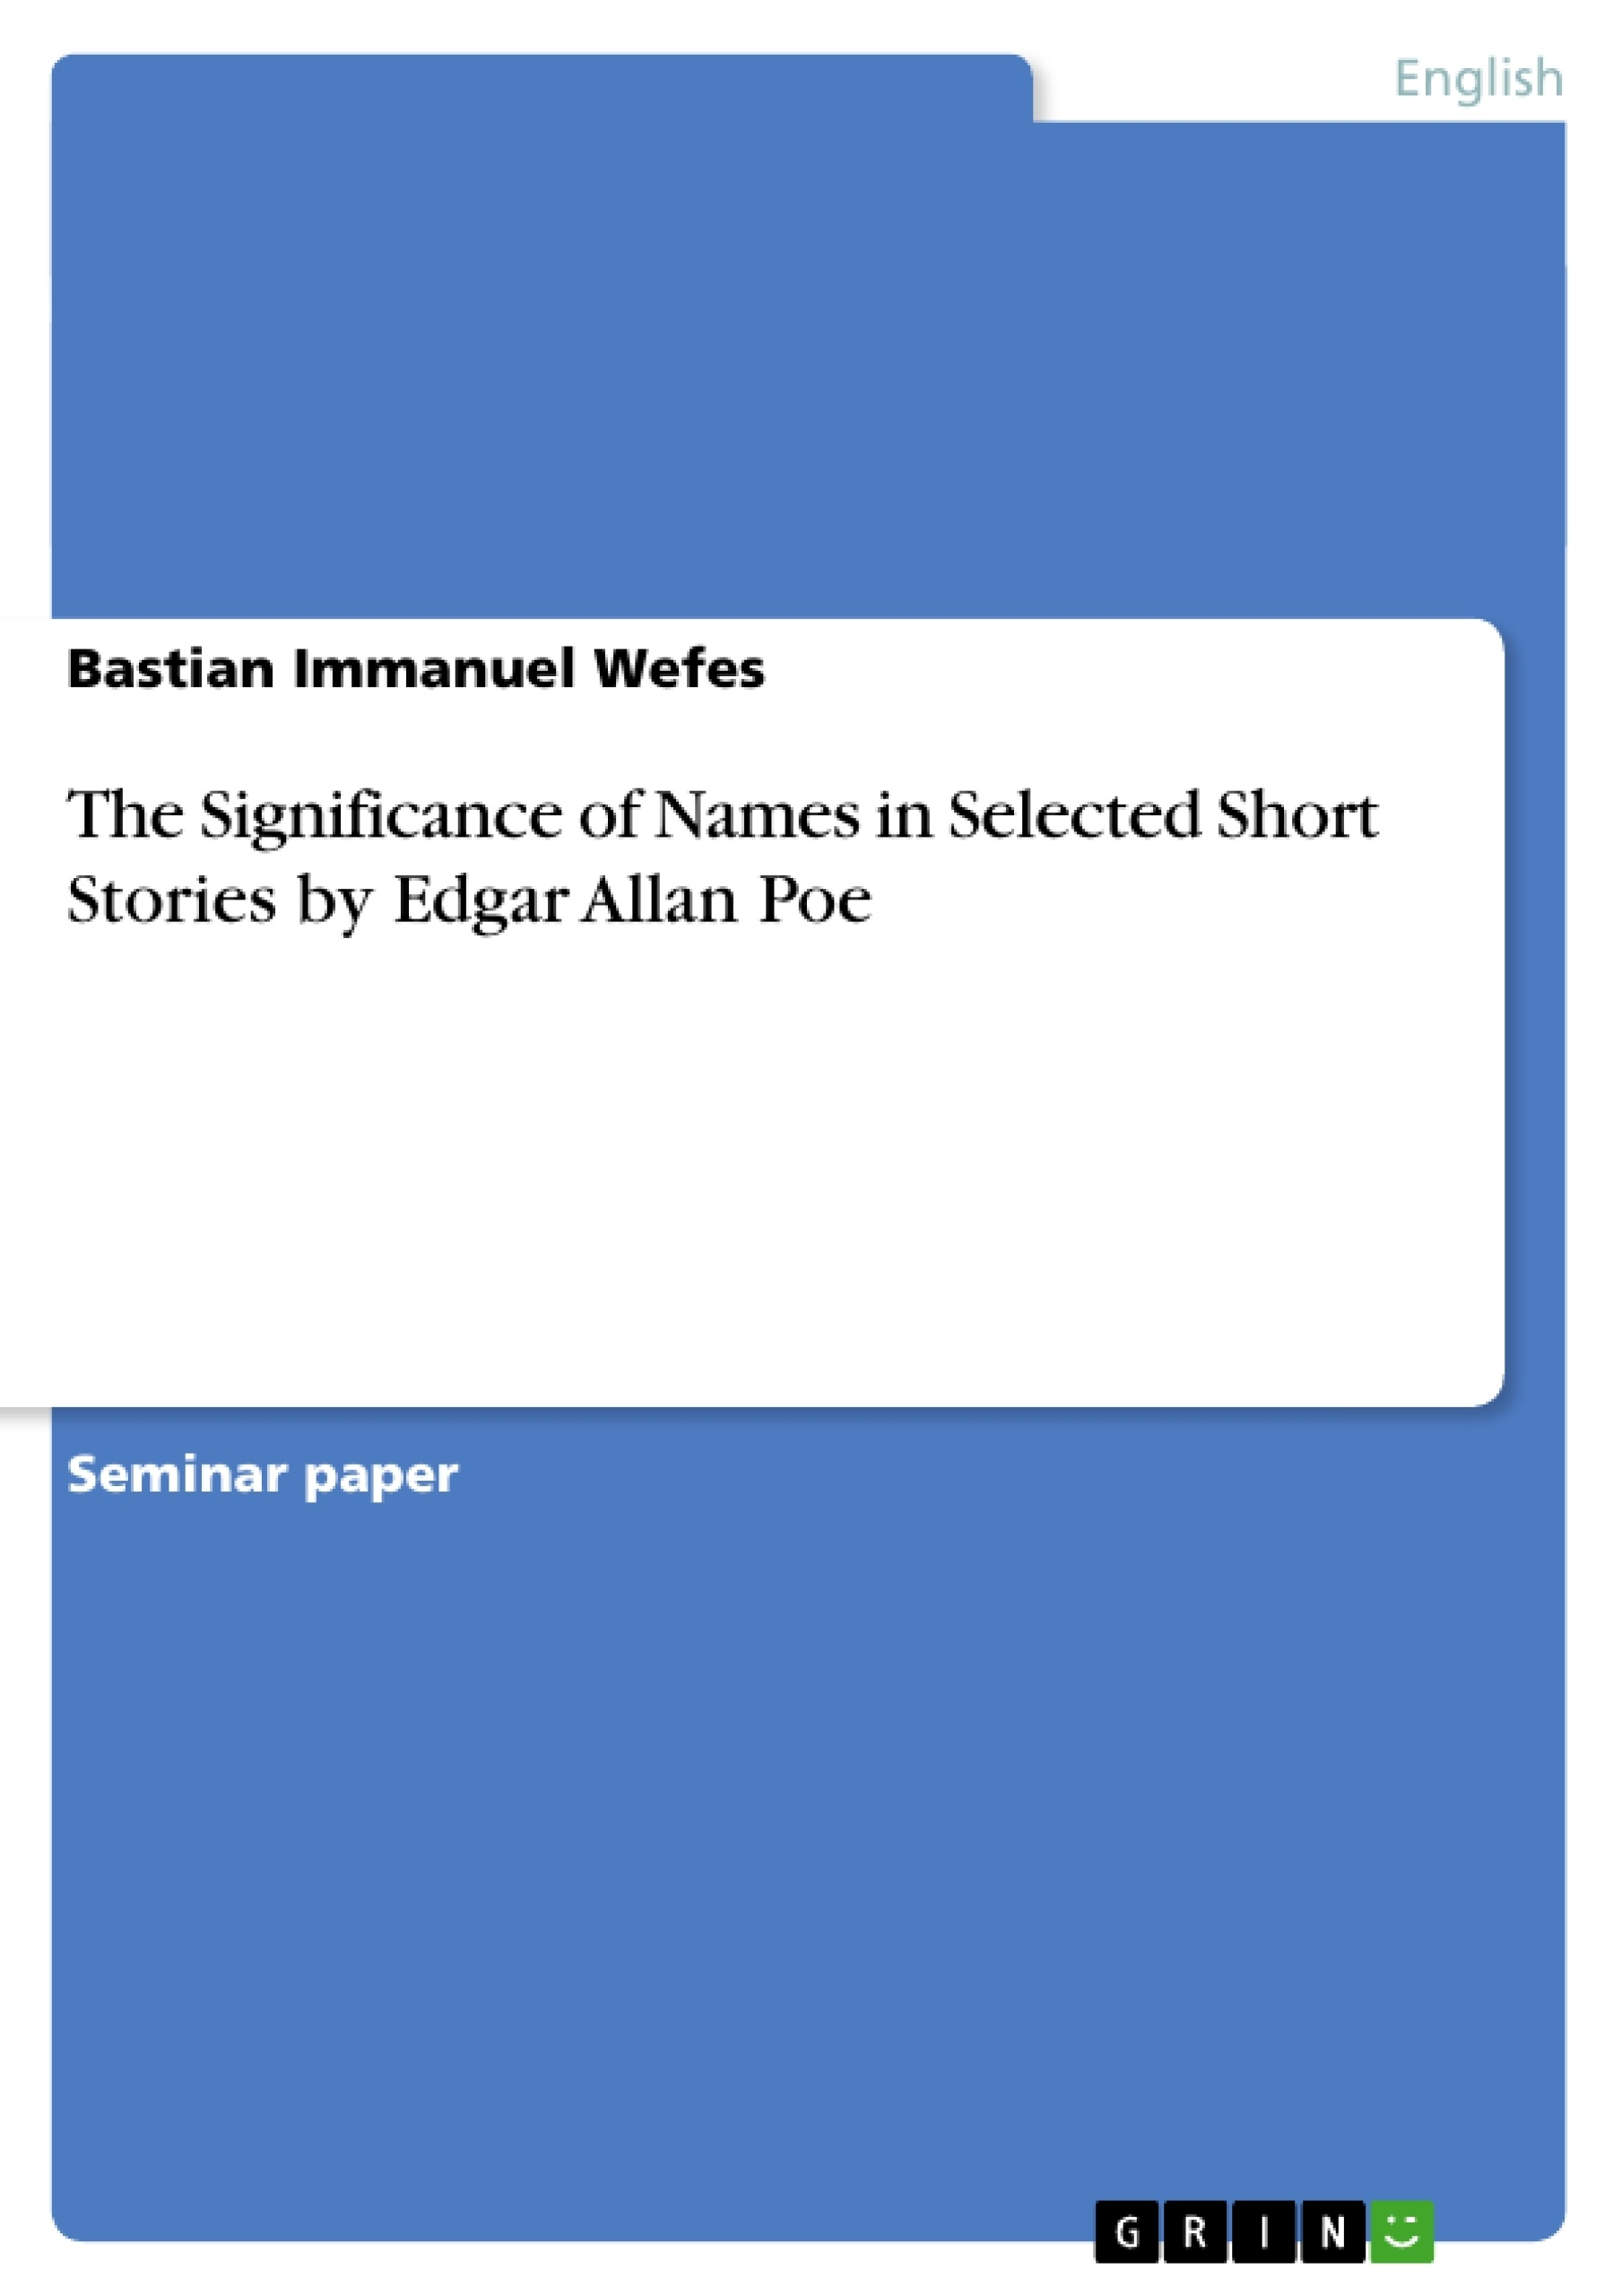 Title: The Significance of Names in Selected Short Stories by Edgar Allan Poe